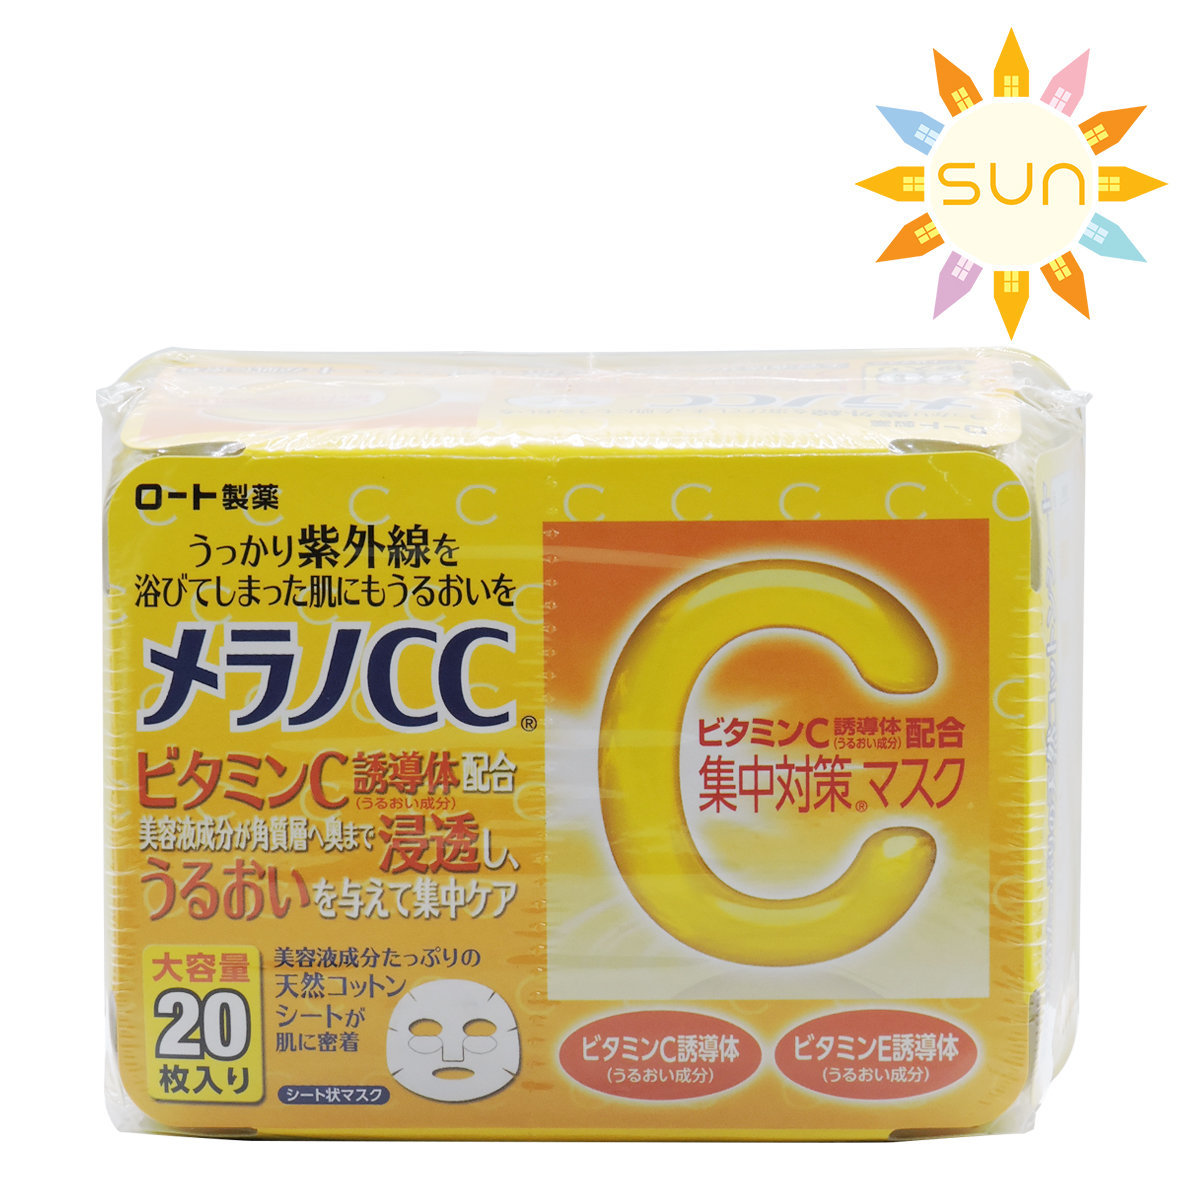 Melano CC After Sun Repair Soothing Whitening Mask (20 sheets) [Parallel Import]